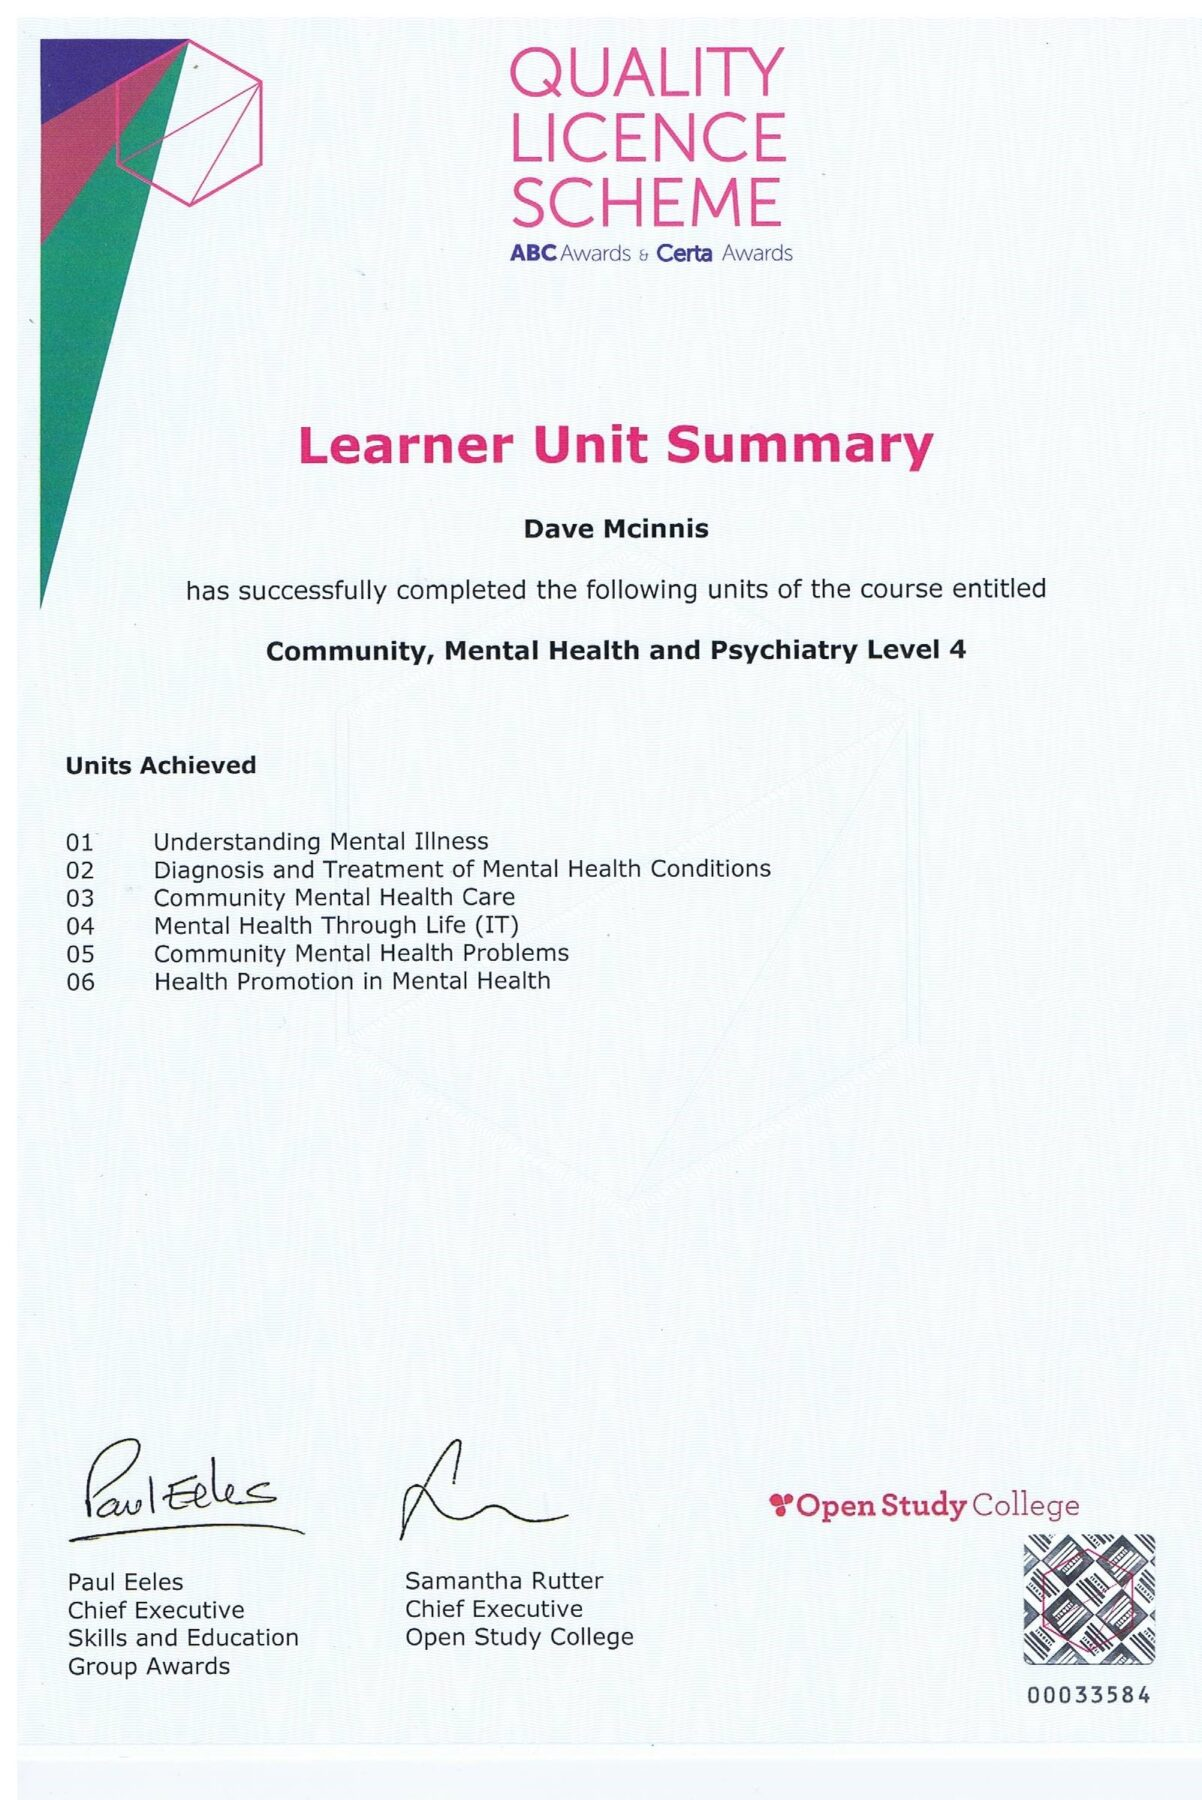 Learner Unit Summary, Community, Mental Health and Psychiatry Level 4